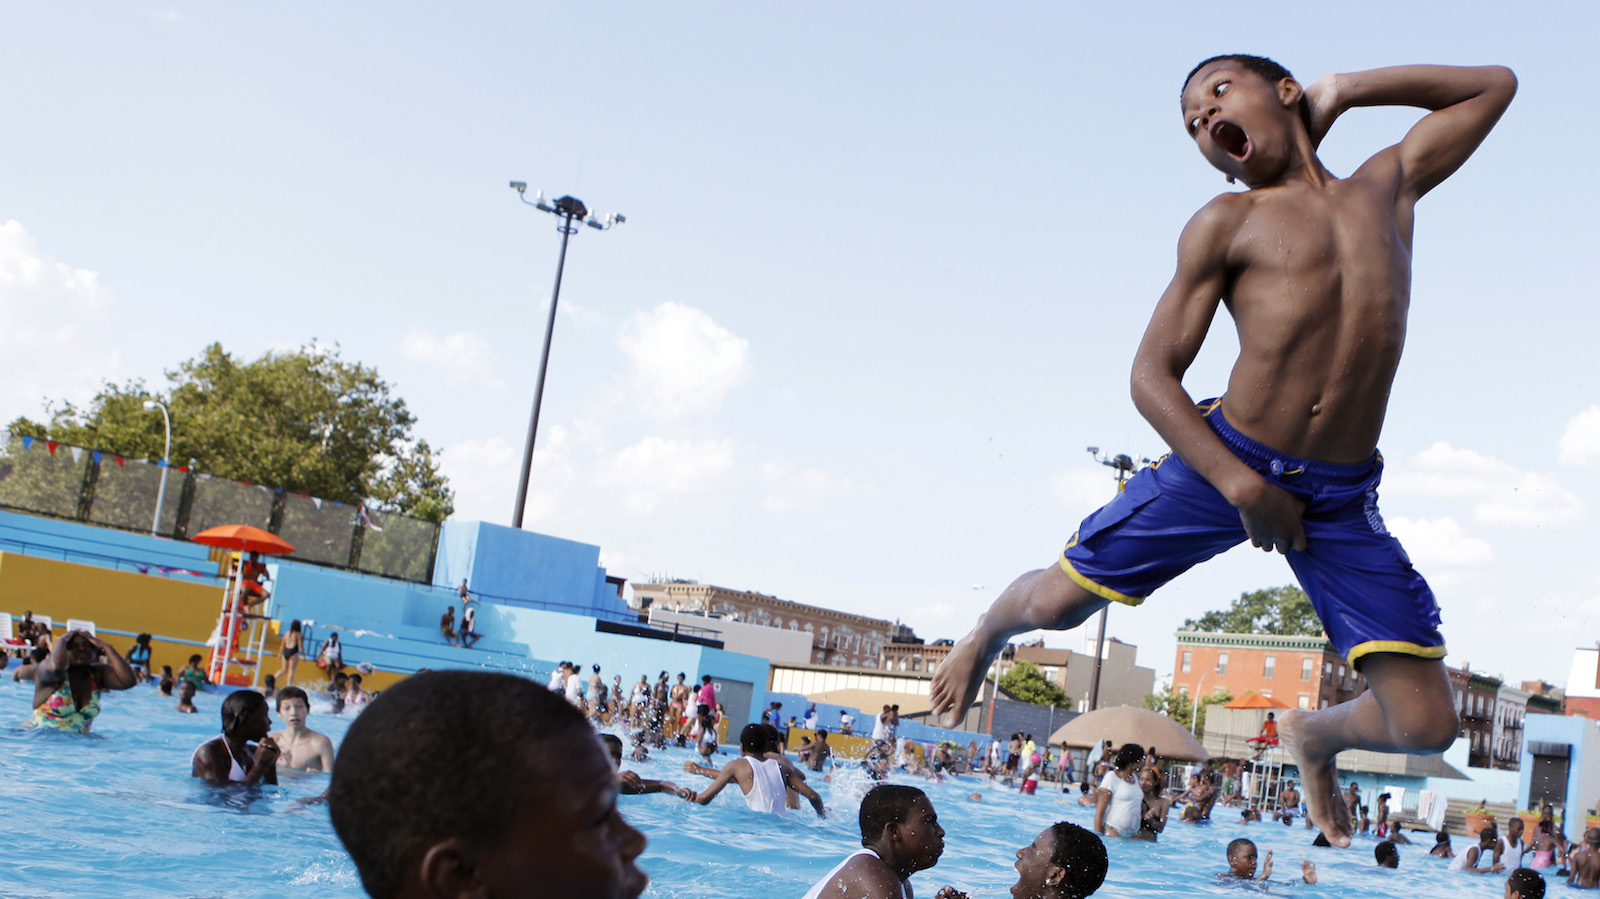 A boy jumps into the water at Kosciuszko Pool in Brooklyn on a hot summer day in New York July 12, 2011.  REUTERS/Lucas Jackson (UNITED STATES - Tags: SOCIETY ENVIRONMENT IMAGES OF THE DAY) - RTR2OT4Z